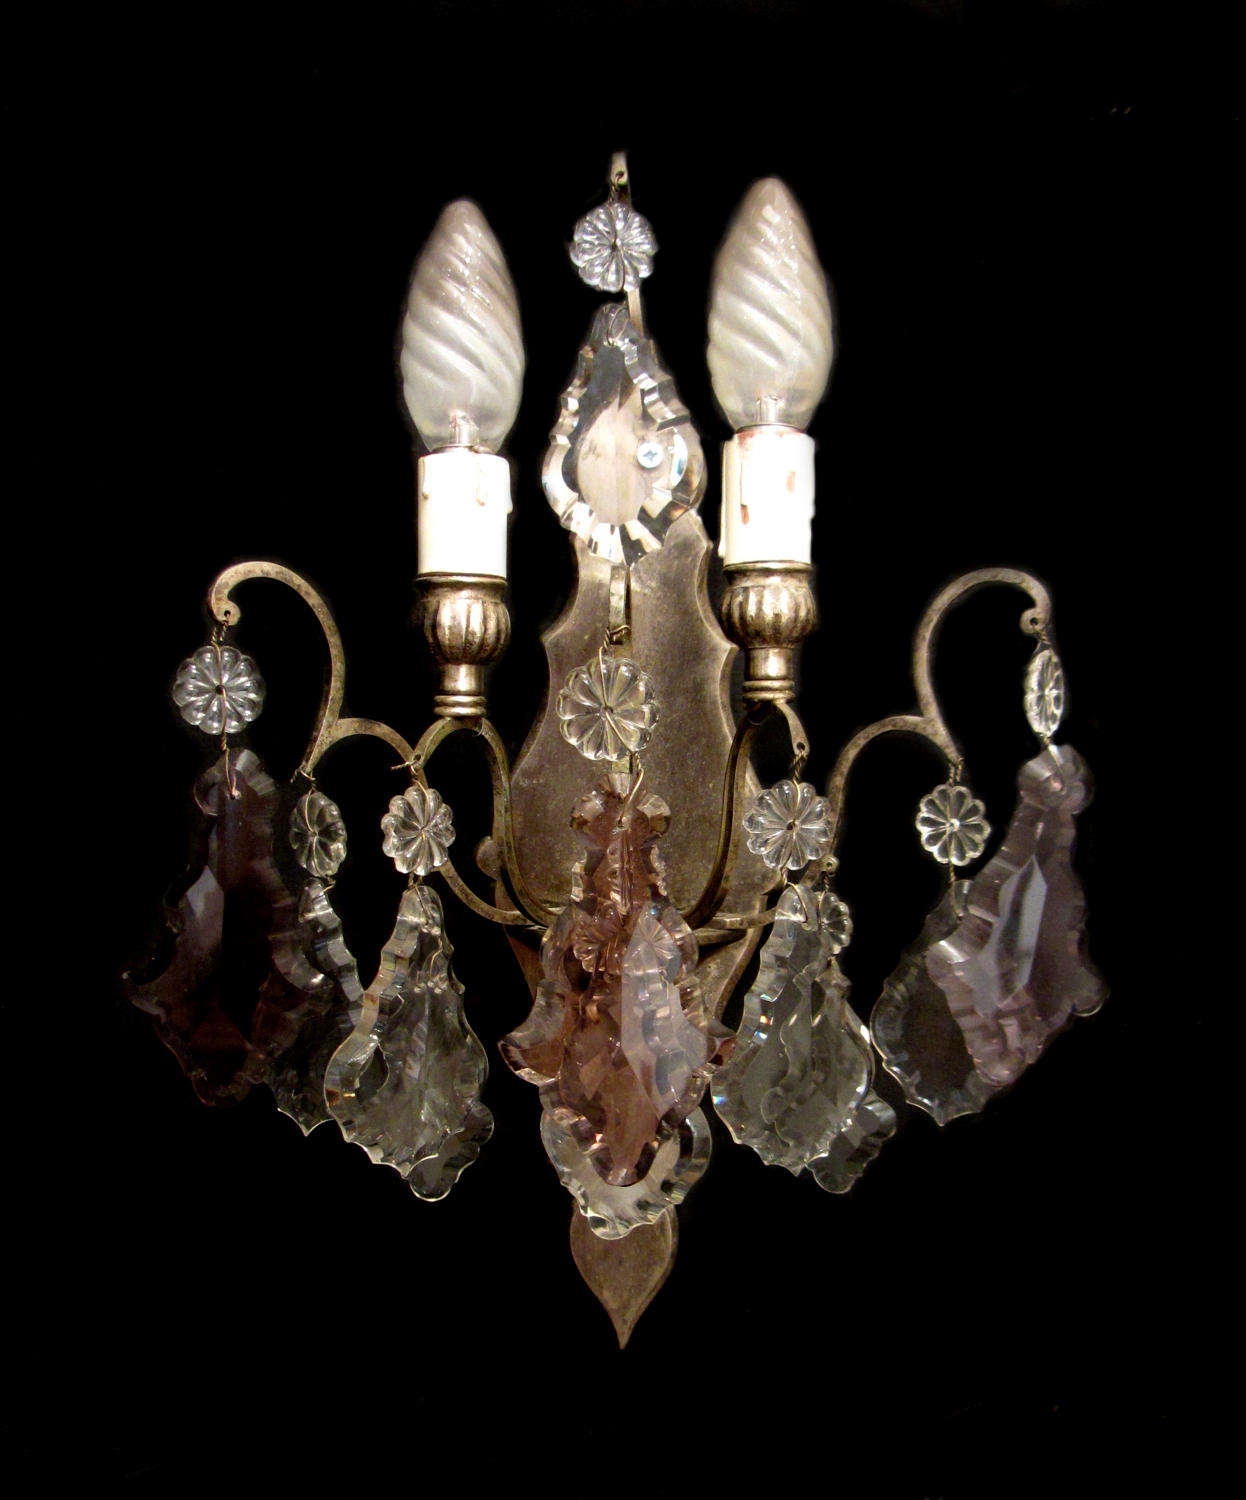 A single silver and crystal wall light